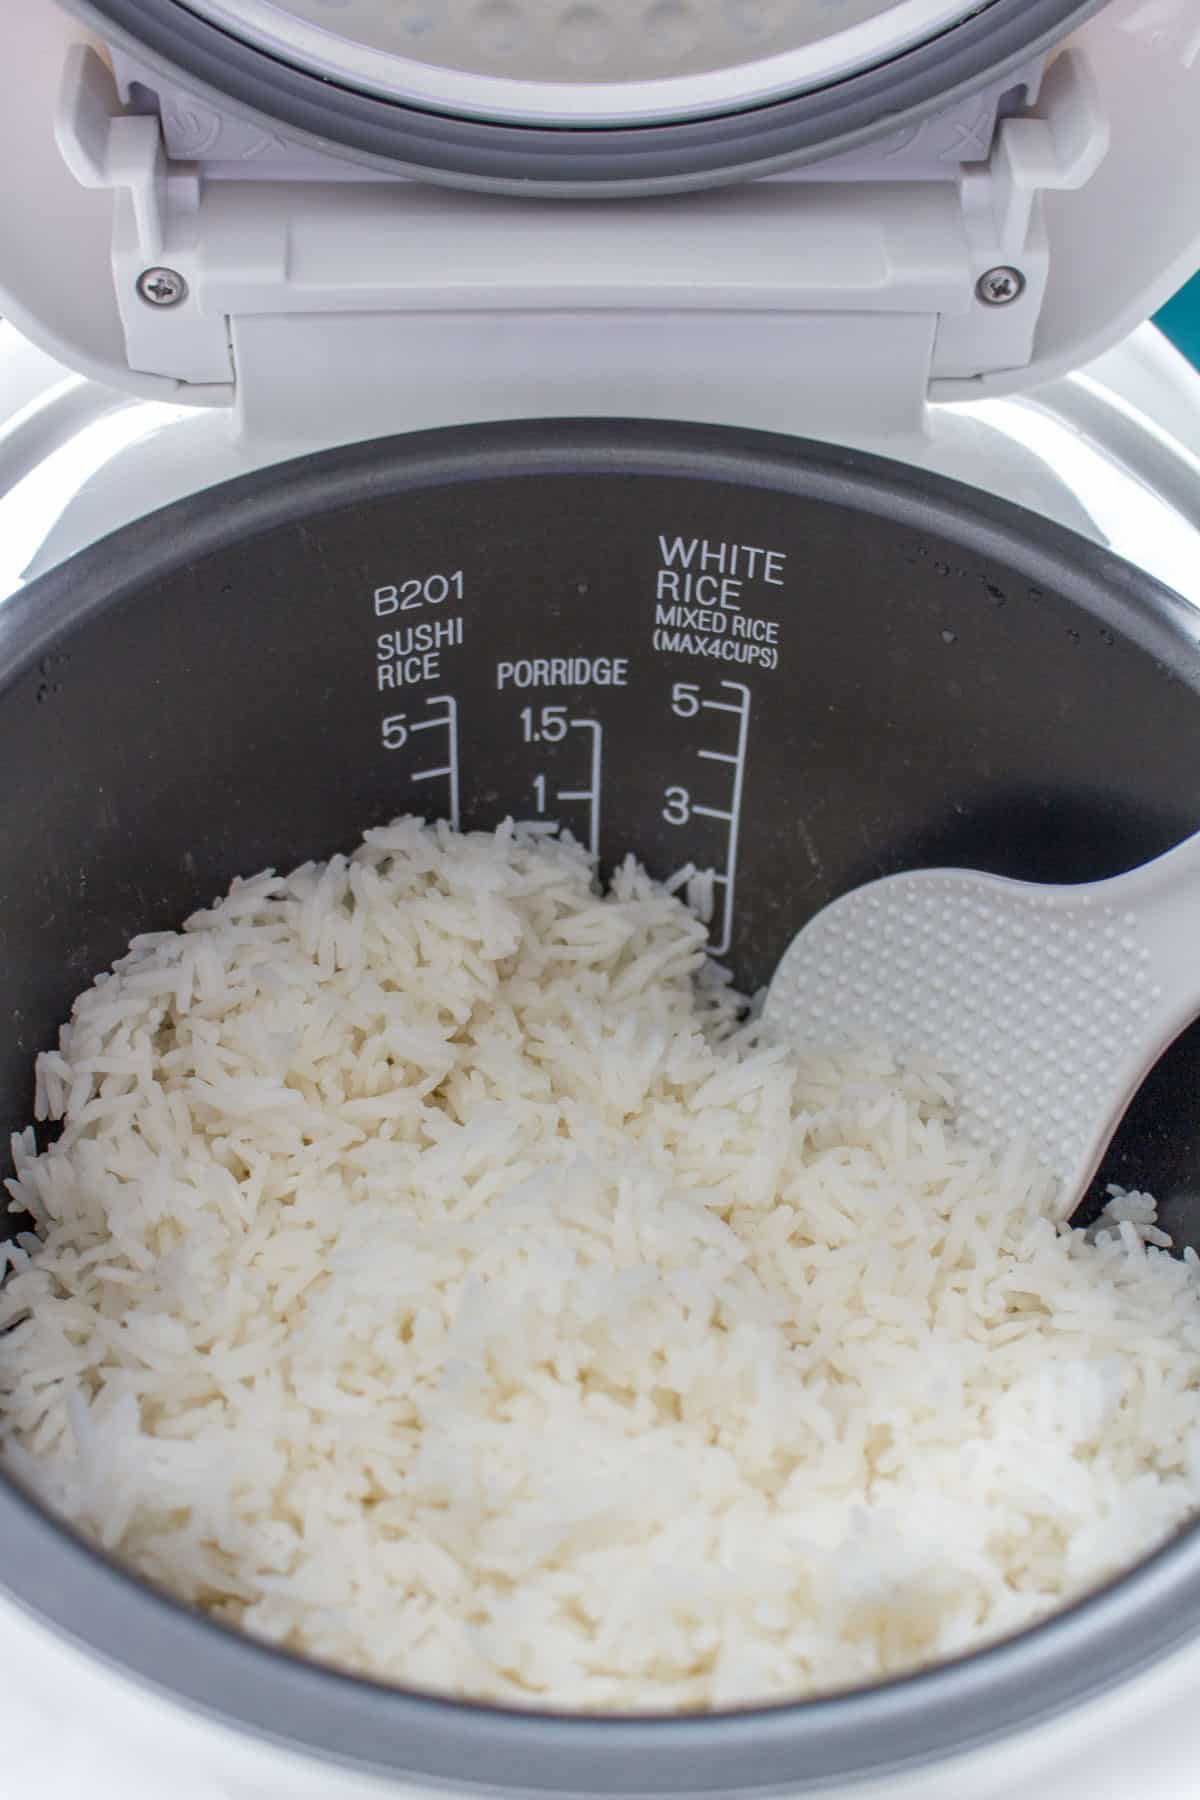 Jasmine rice inside of a rice cooker.